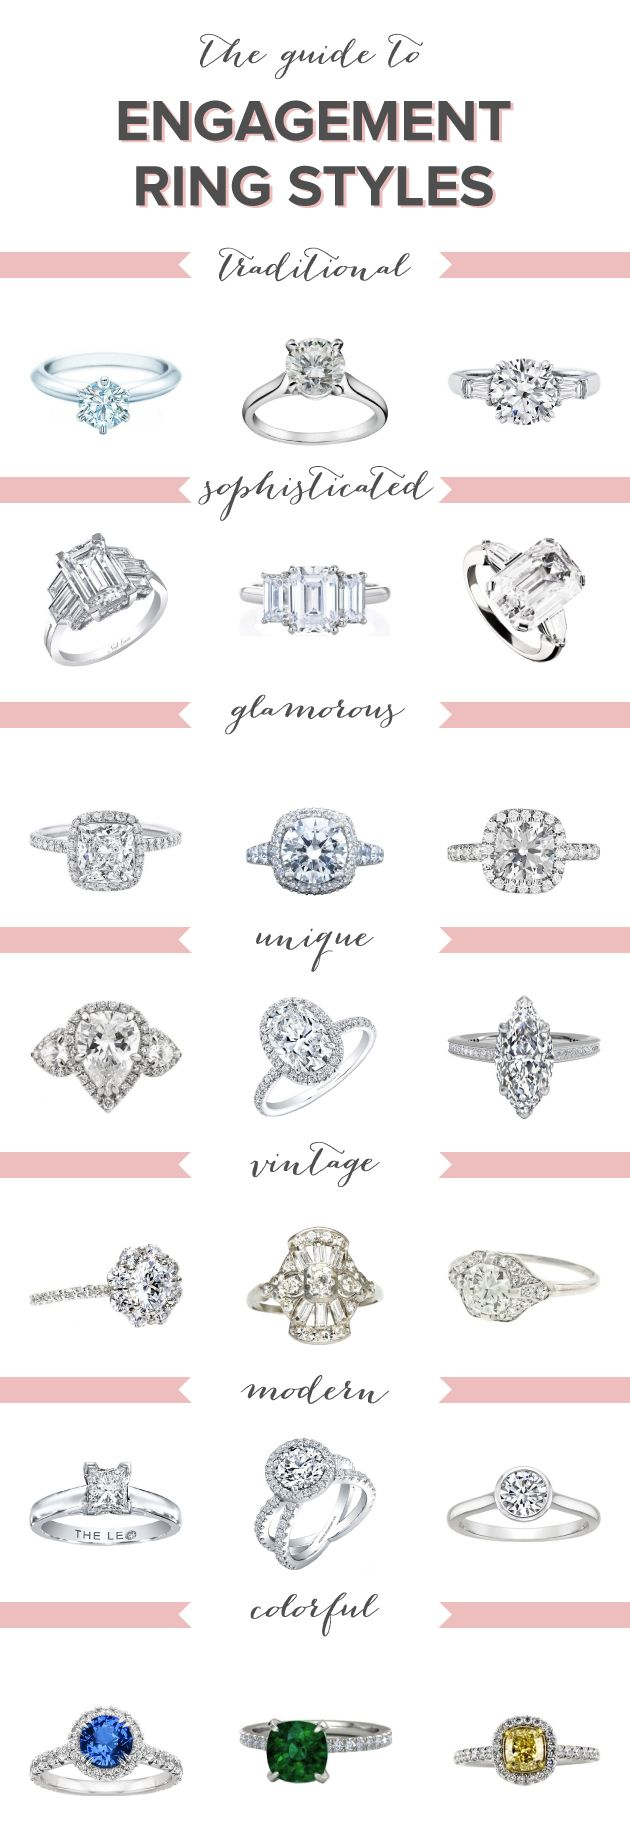 How to choose engagement ring style